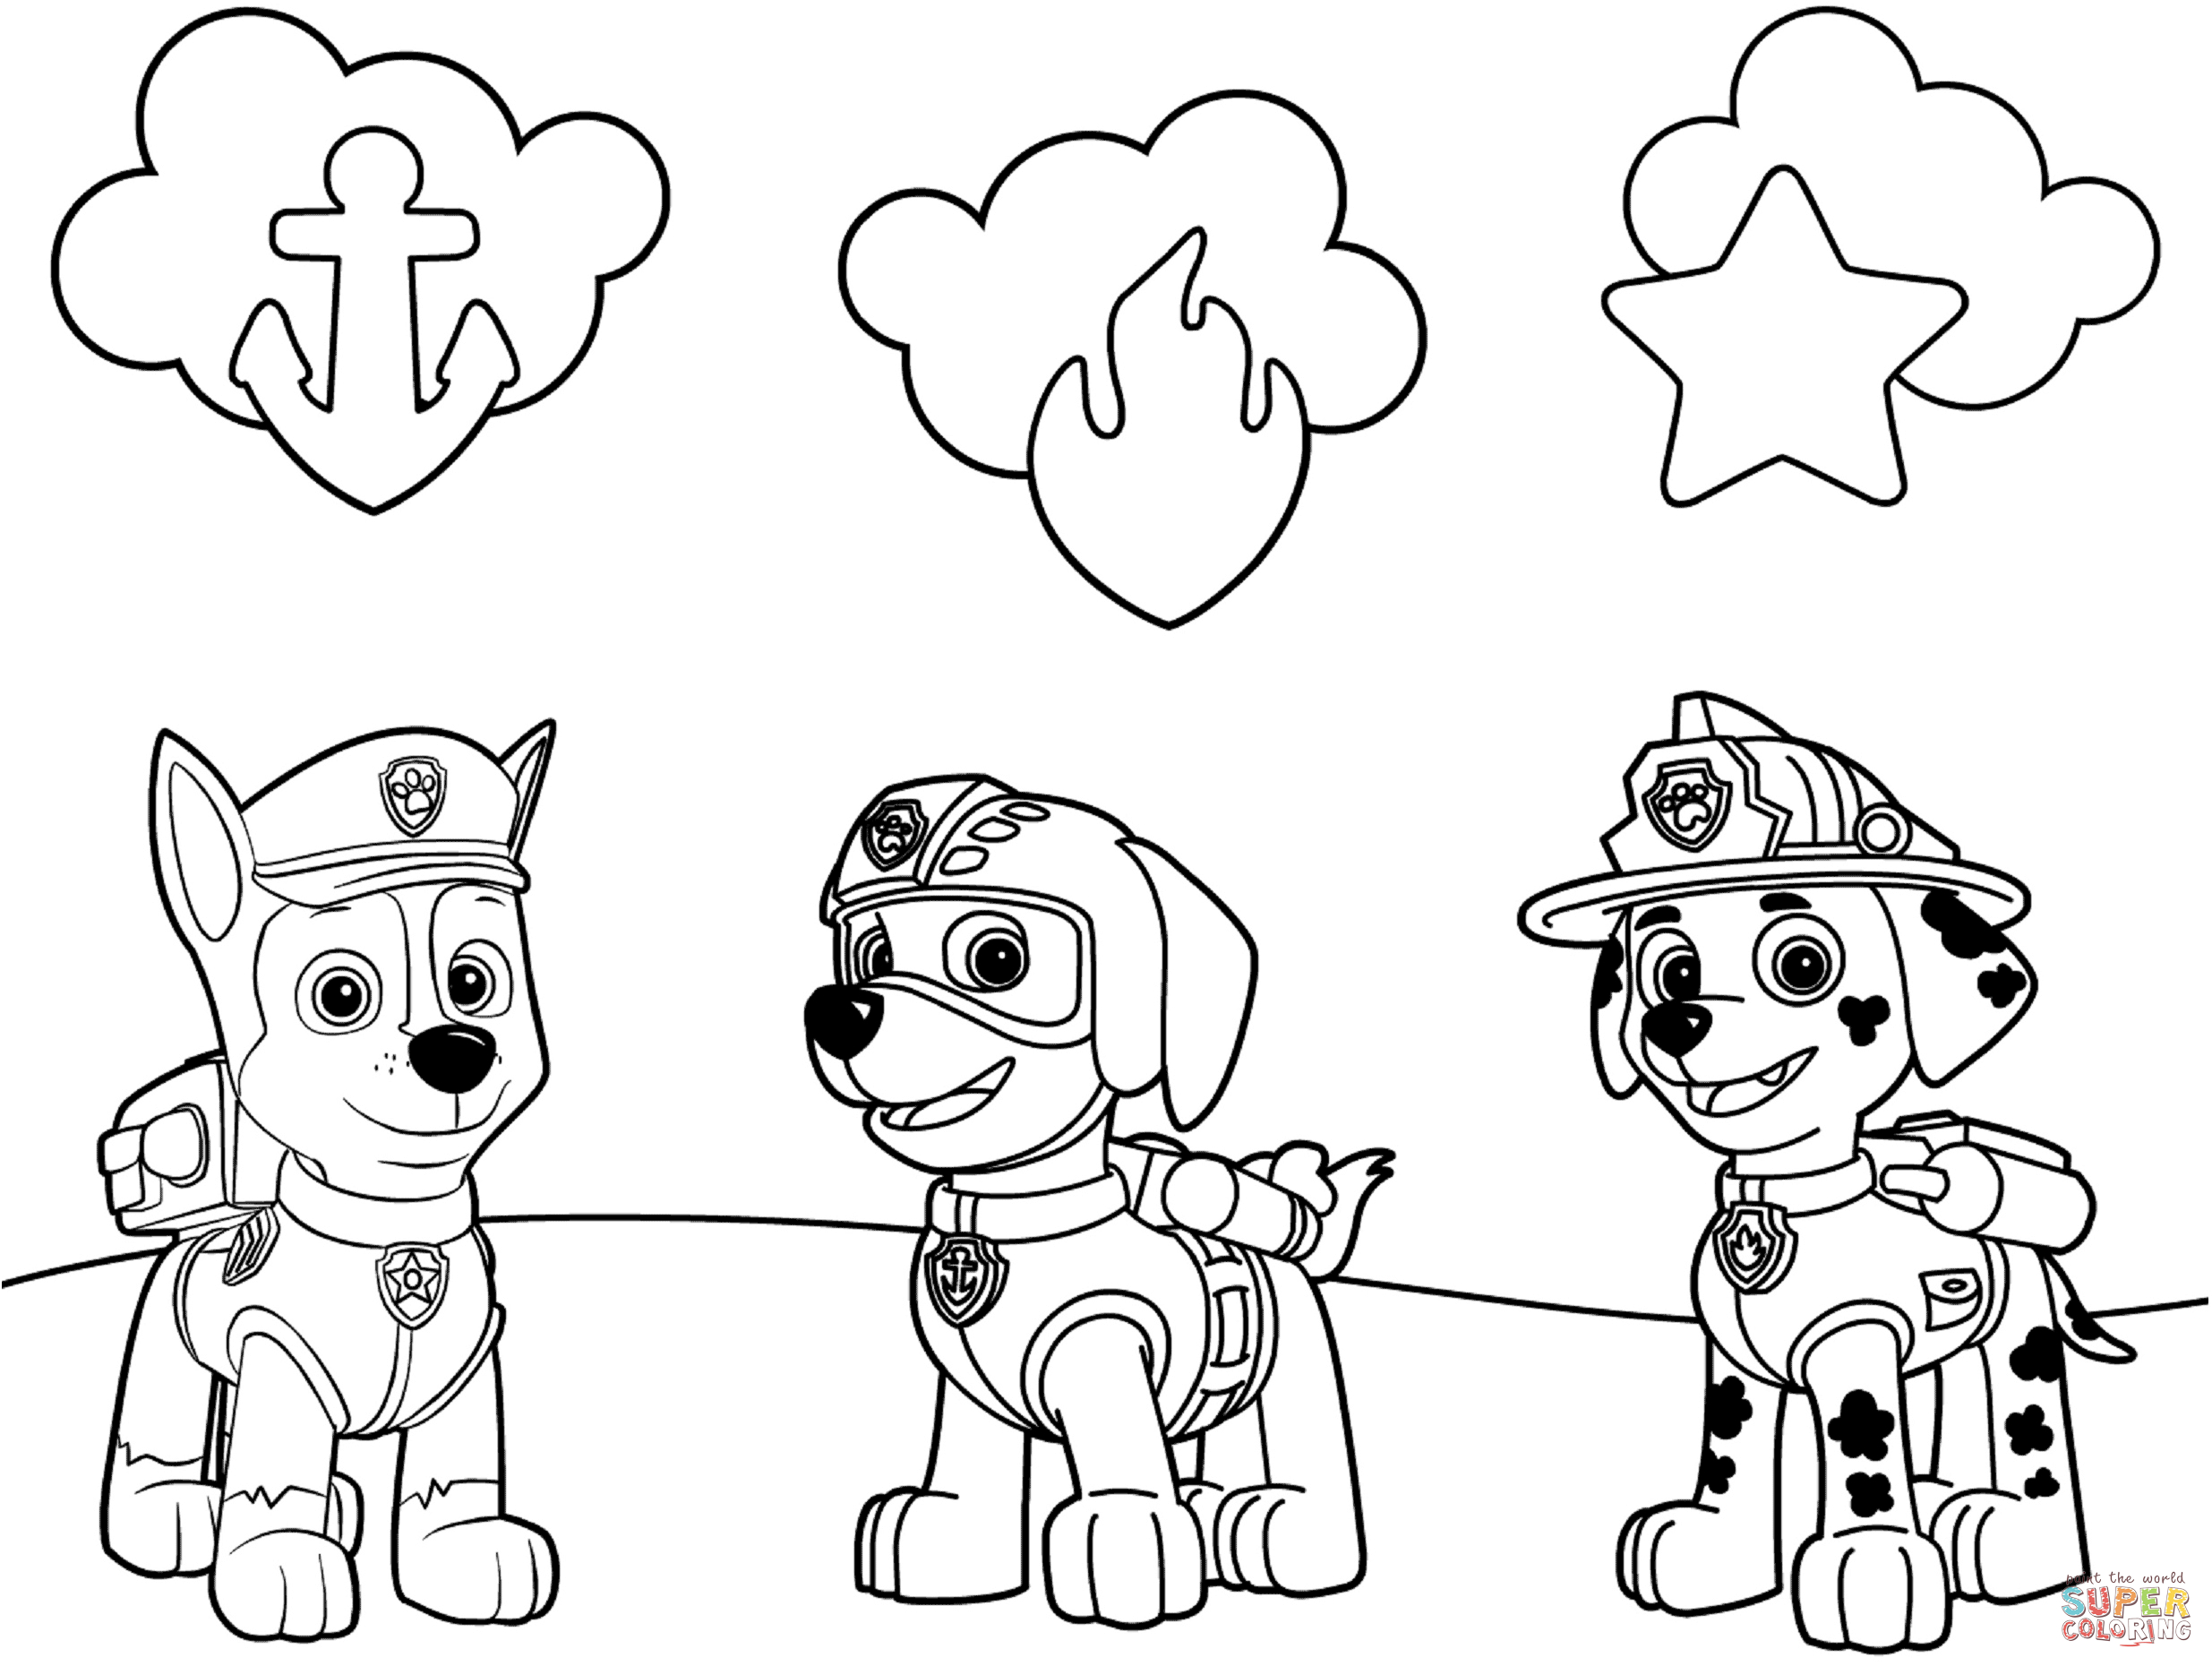 Paw Patrol Badges Coloring Page | Free Printable Coloring Pages - Free Printable Paw Patrol Coloring Pages